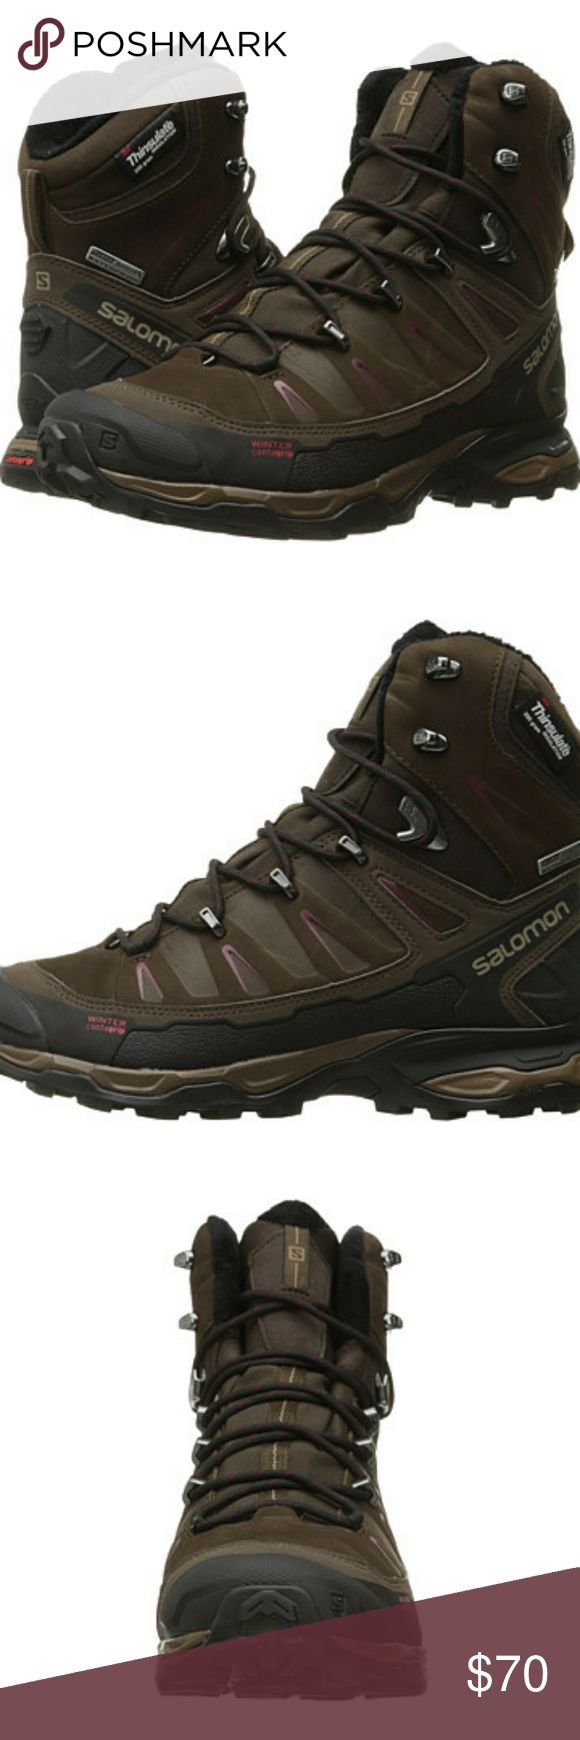 Salomon Women's X Ultra Winter Boot Battle the winter elements like a pro in the ruggedly built Salomon X Ultra Winter hiking boot.  Climashield™ waterproof membrane keeps the elements out.  200 g Thinsulate™ multi-loft insulation adapts for specific uses and different conditions.  Waterproof leather and nubuck leather uppers.  Brand new in box, Absolute Brown size 8 Salomon Shoes